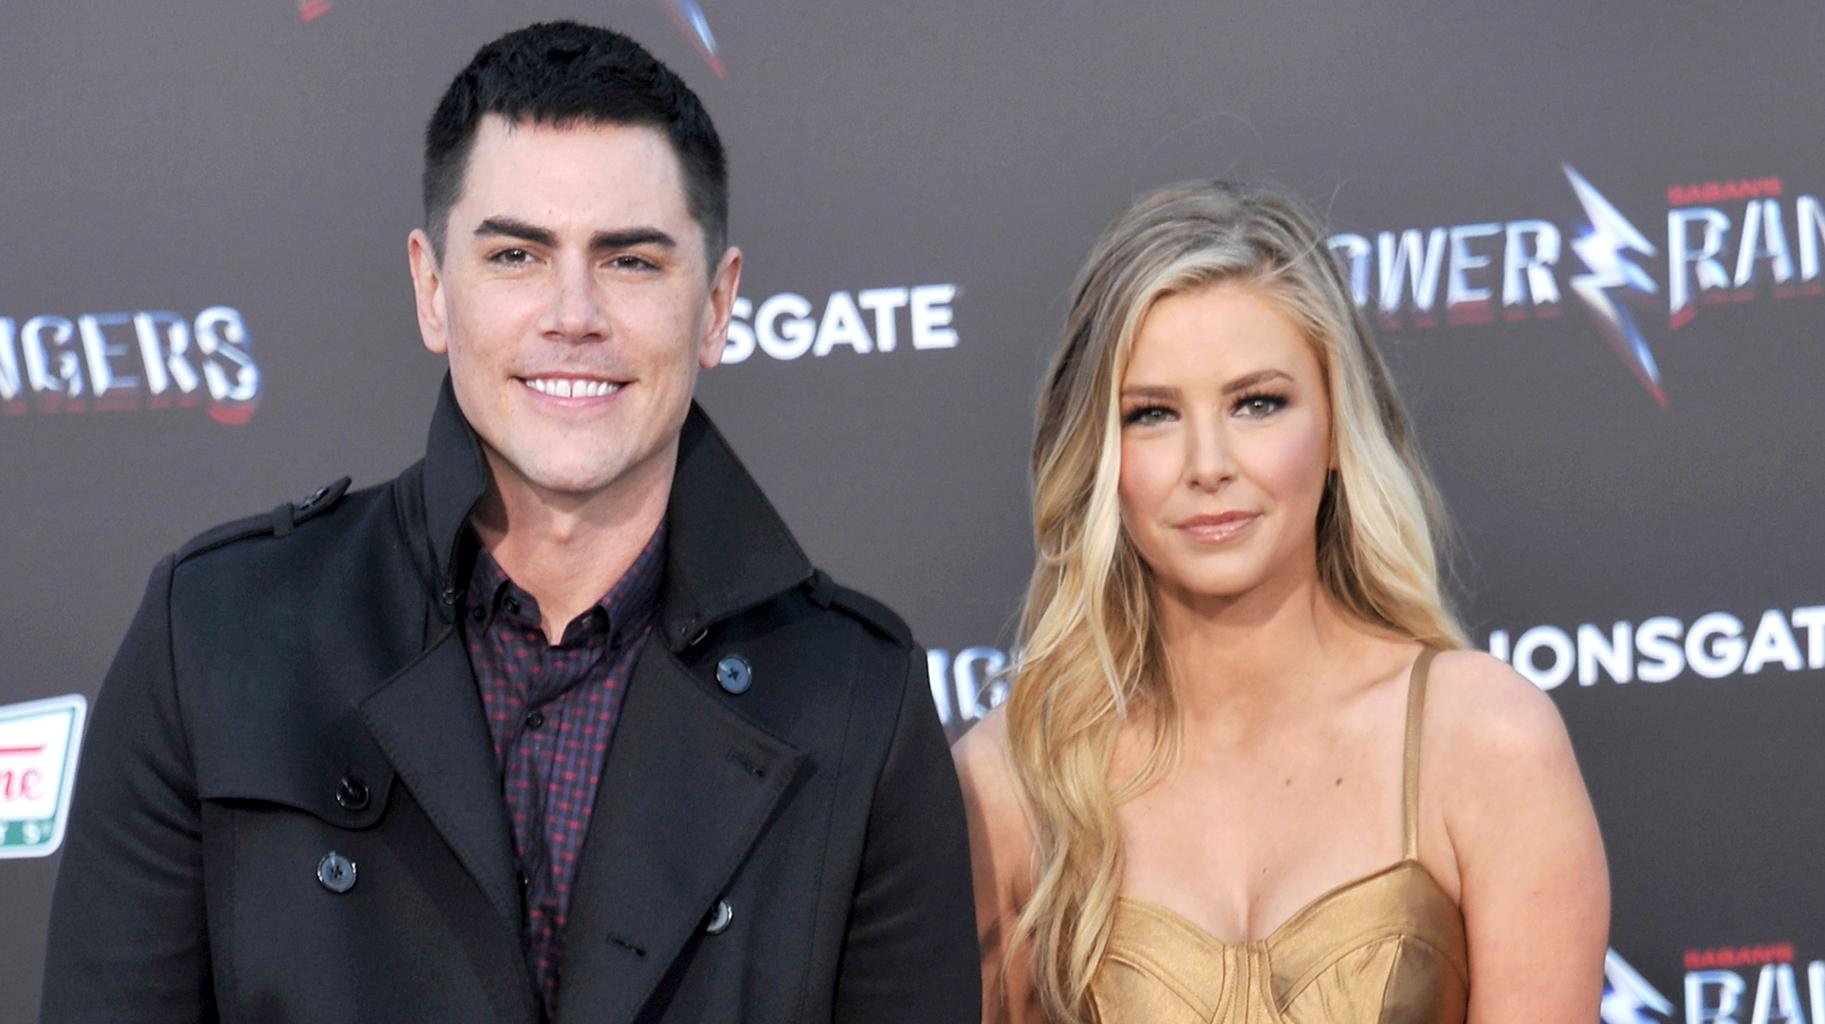 Ariana Madix Has The Perfect Response To Hater Accusing Her Of Cheating On Tom Sandoval